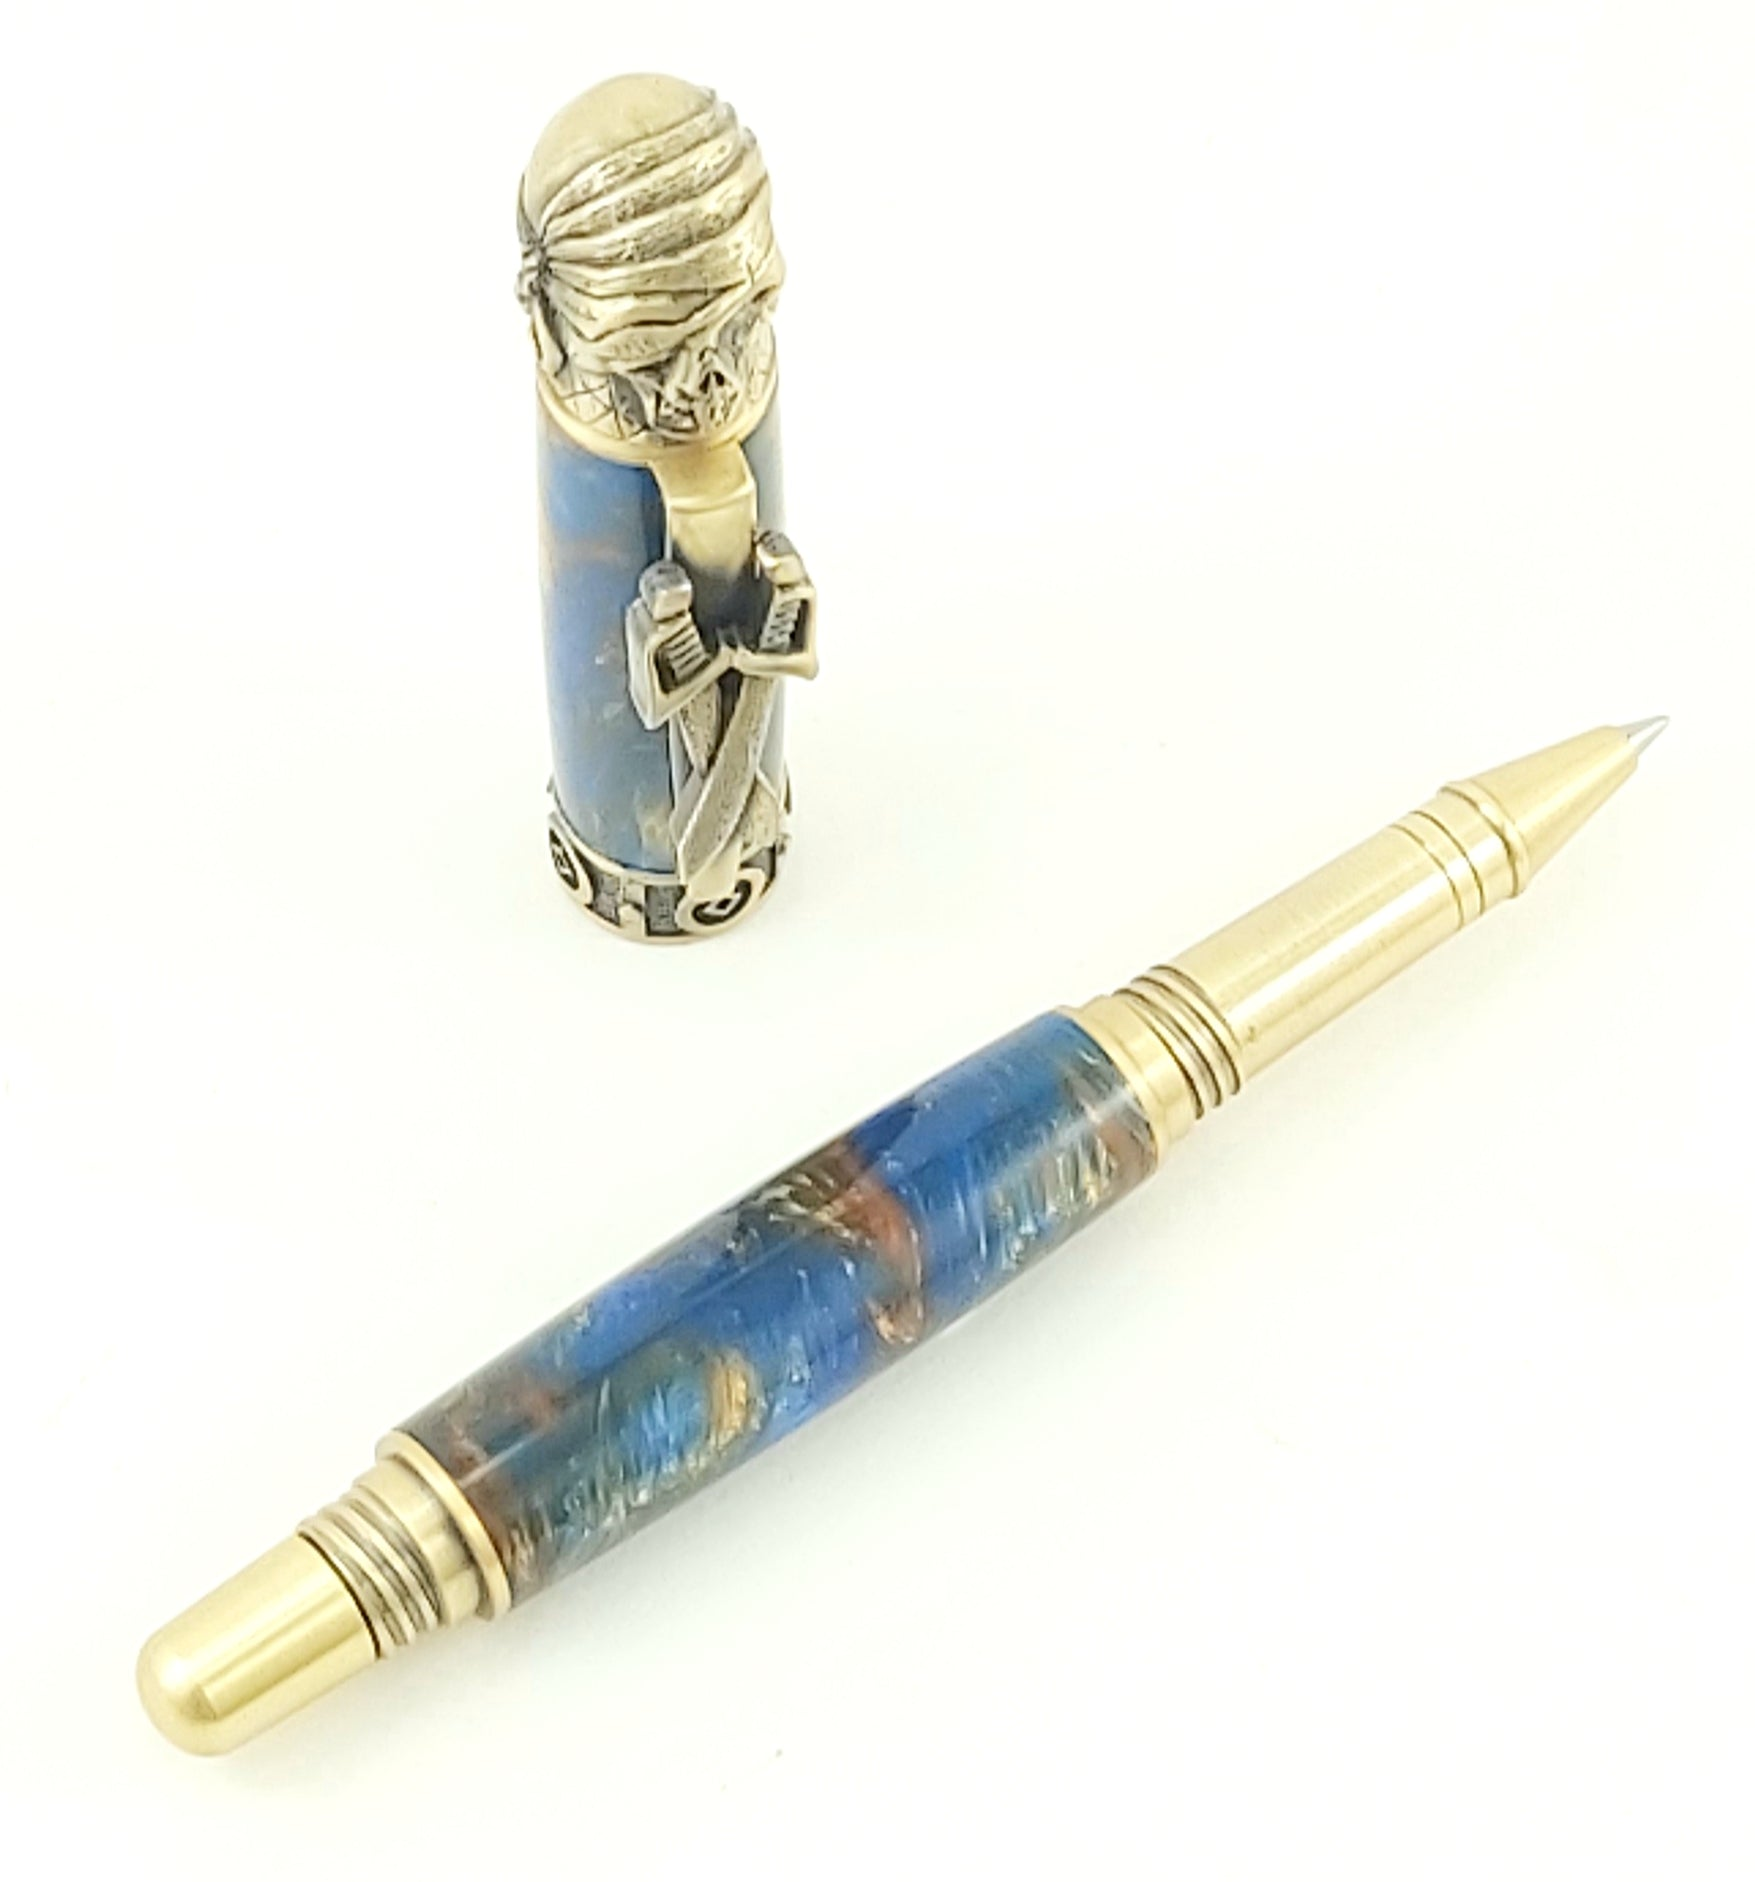 Pirate Pen - 2463 - Antique Brass with Sunken Treasure Acrylic